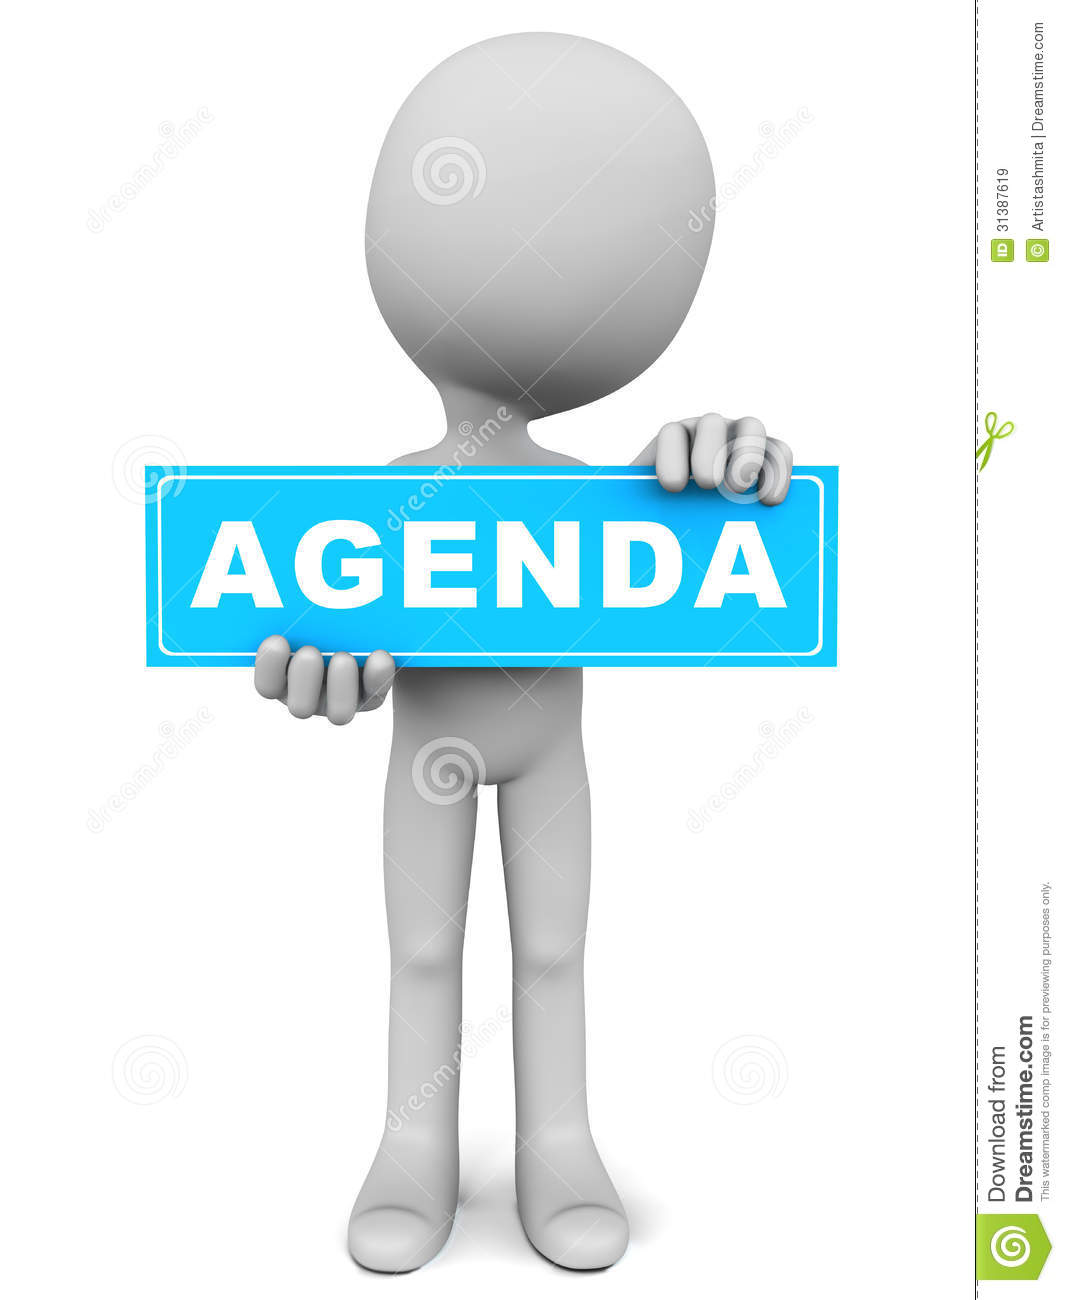 agenda-clipart-agenda-business-meeting-concept-banner-blue-over-white ...